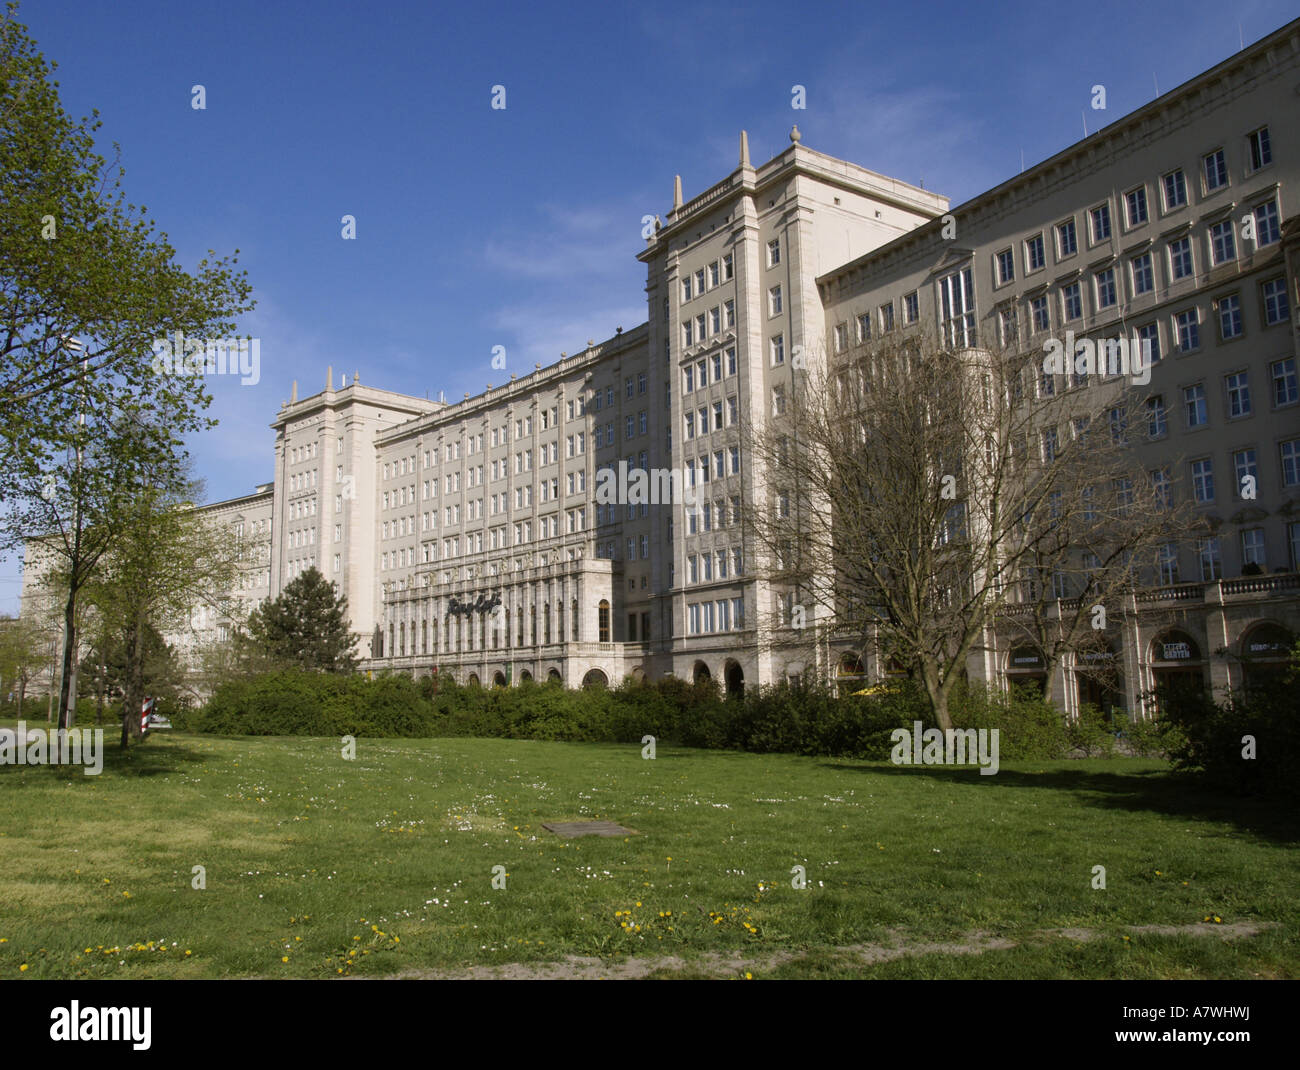 Apartment buildings from the 50s, Leipzig, Saxony, Germany - Stock Image